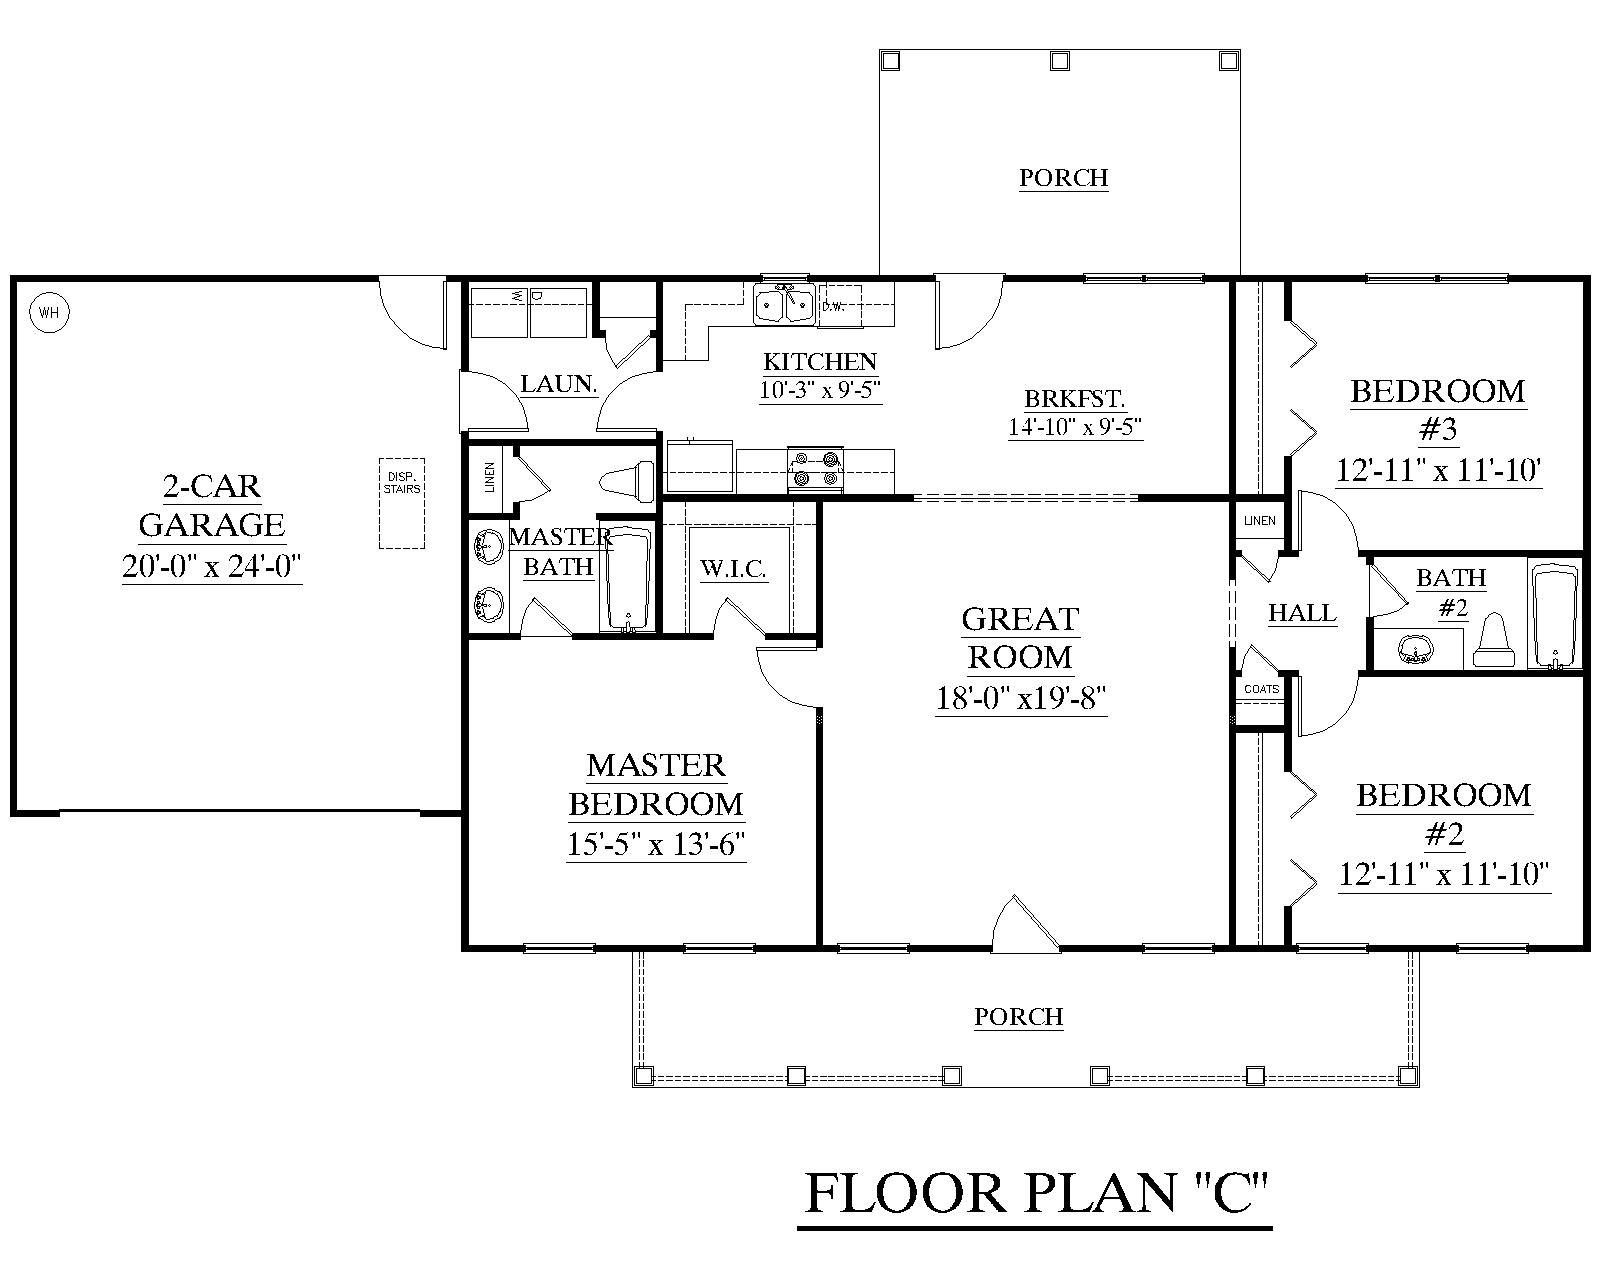 House plan 1500 c the james c attractive one story ranch for Three bedroom ranch floor plans